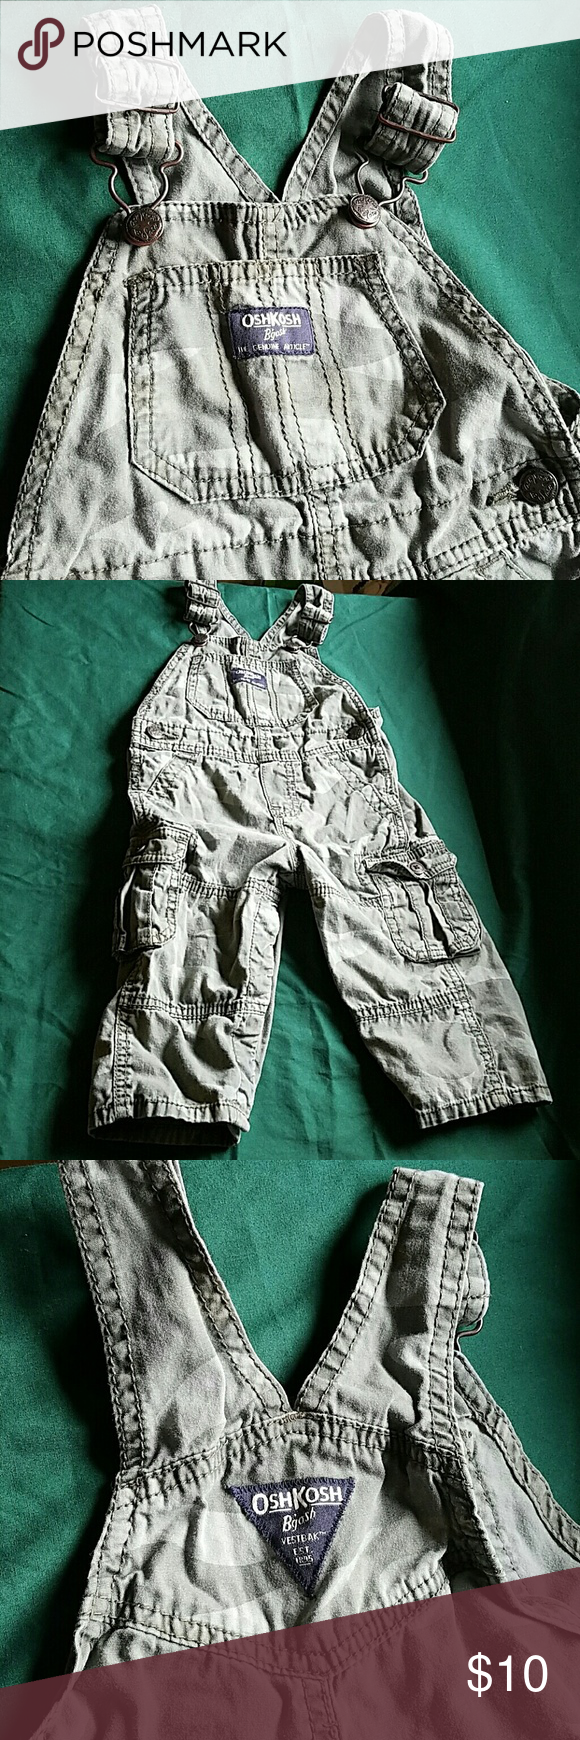 Osh Kosh 12 months Boys Camo Overalls snap legs Osh Kosh 12 months Boys Camo Overalls snap legs. EUC. Only washed with fragrance free detergent. Smoke free and pet free home. Check out my other kids clothes for a bundle savings of 20%! Osh Kosh Bottoms Overalls